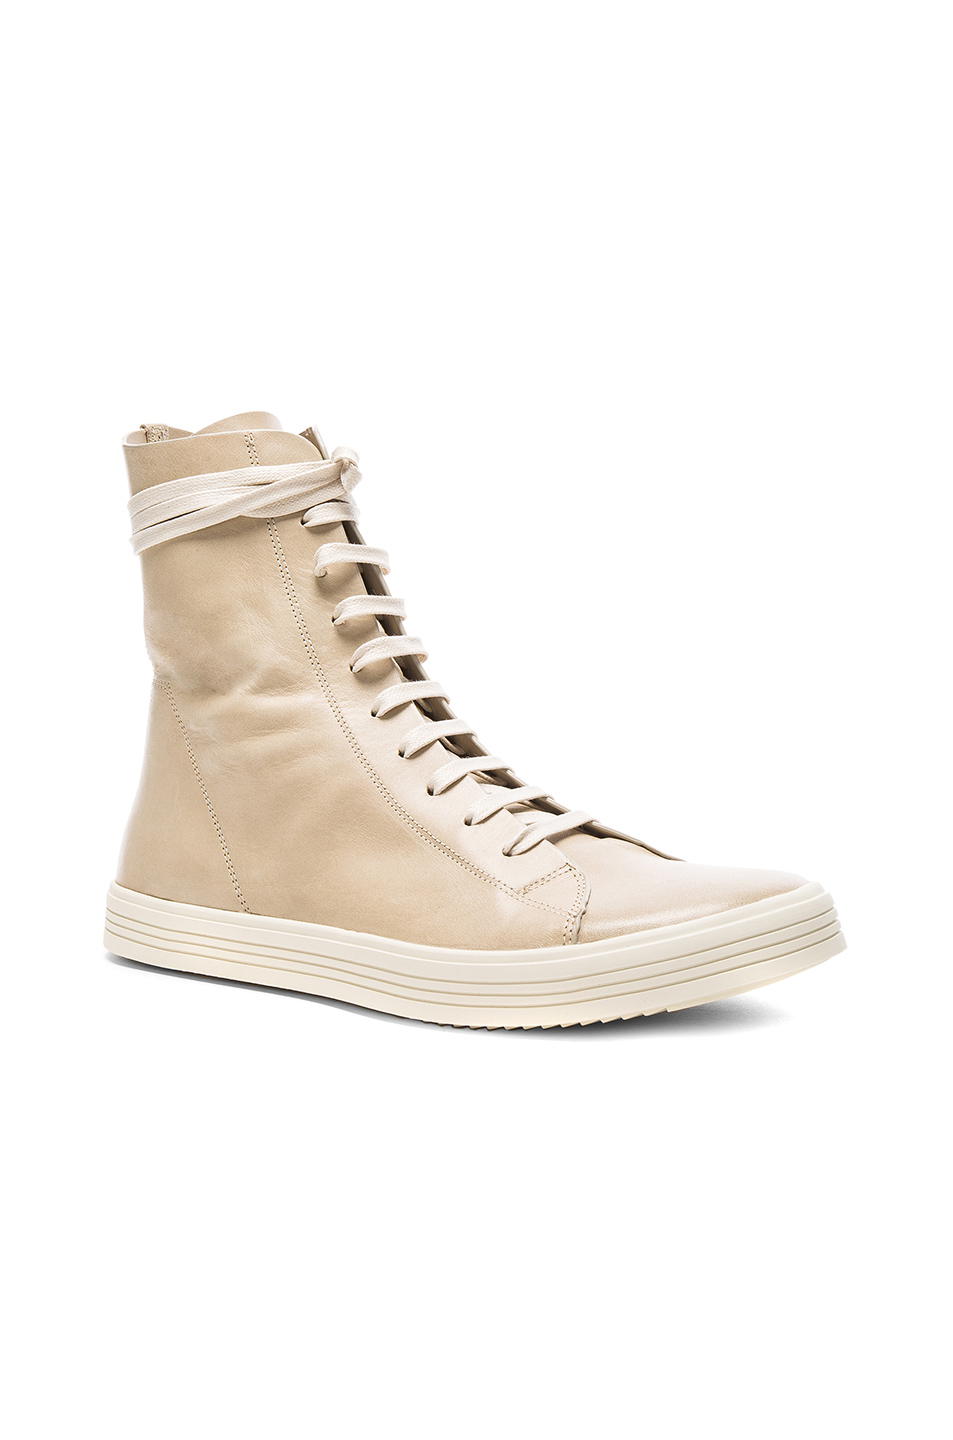 Rick Owens Mastosneaks in Neutrals